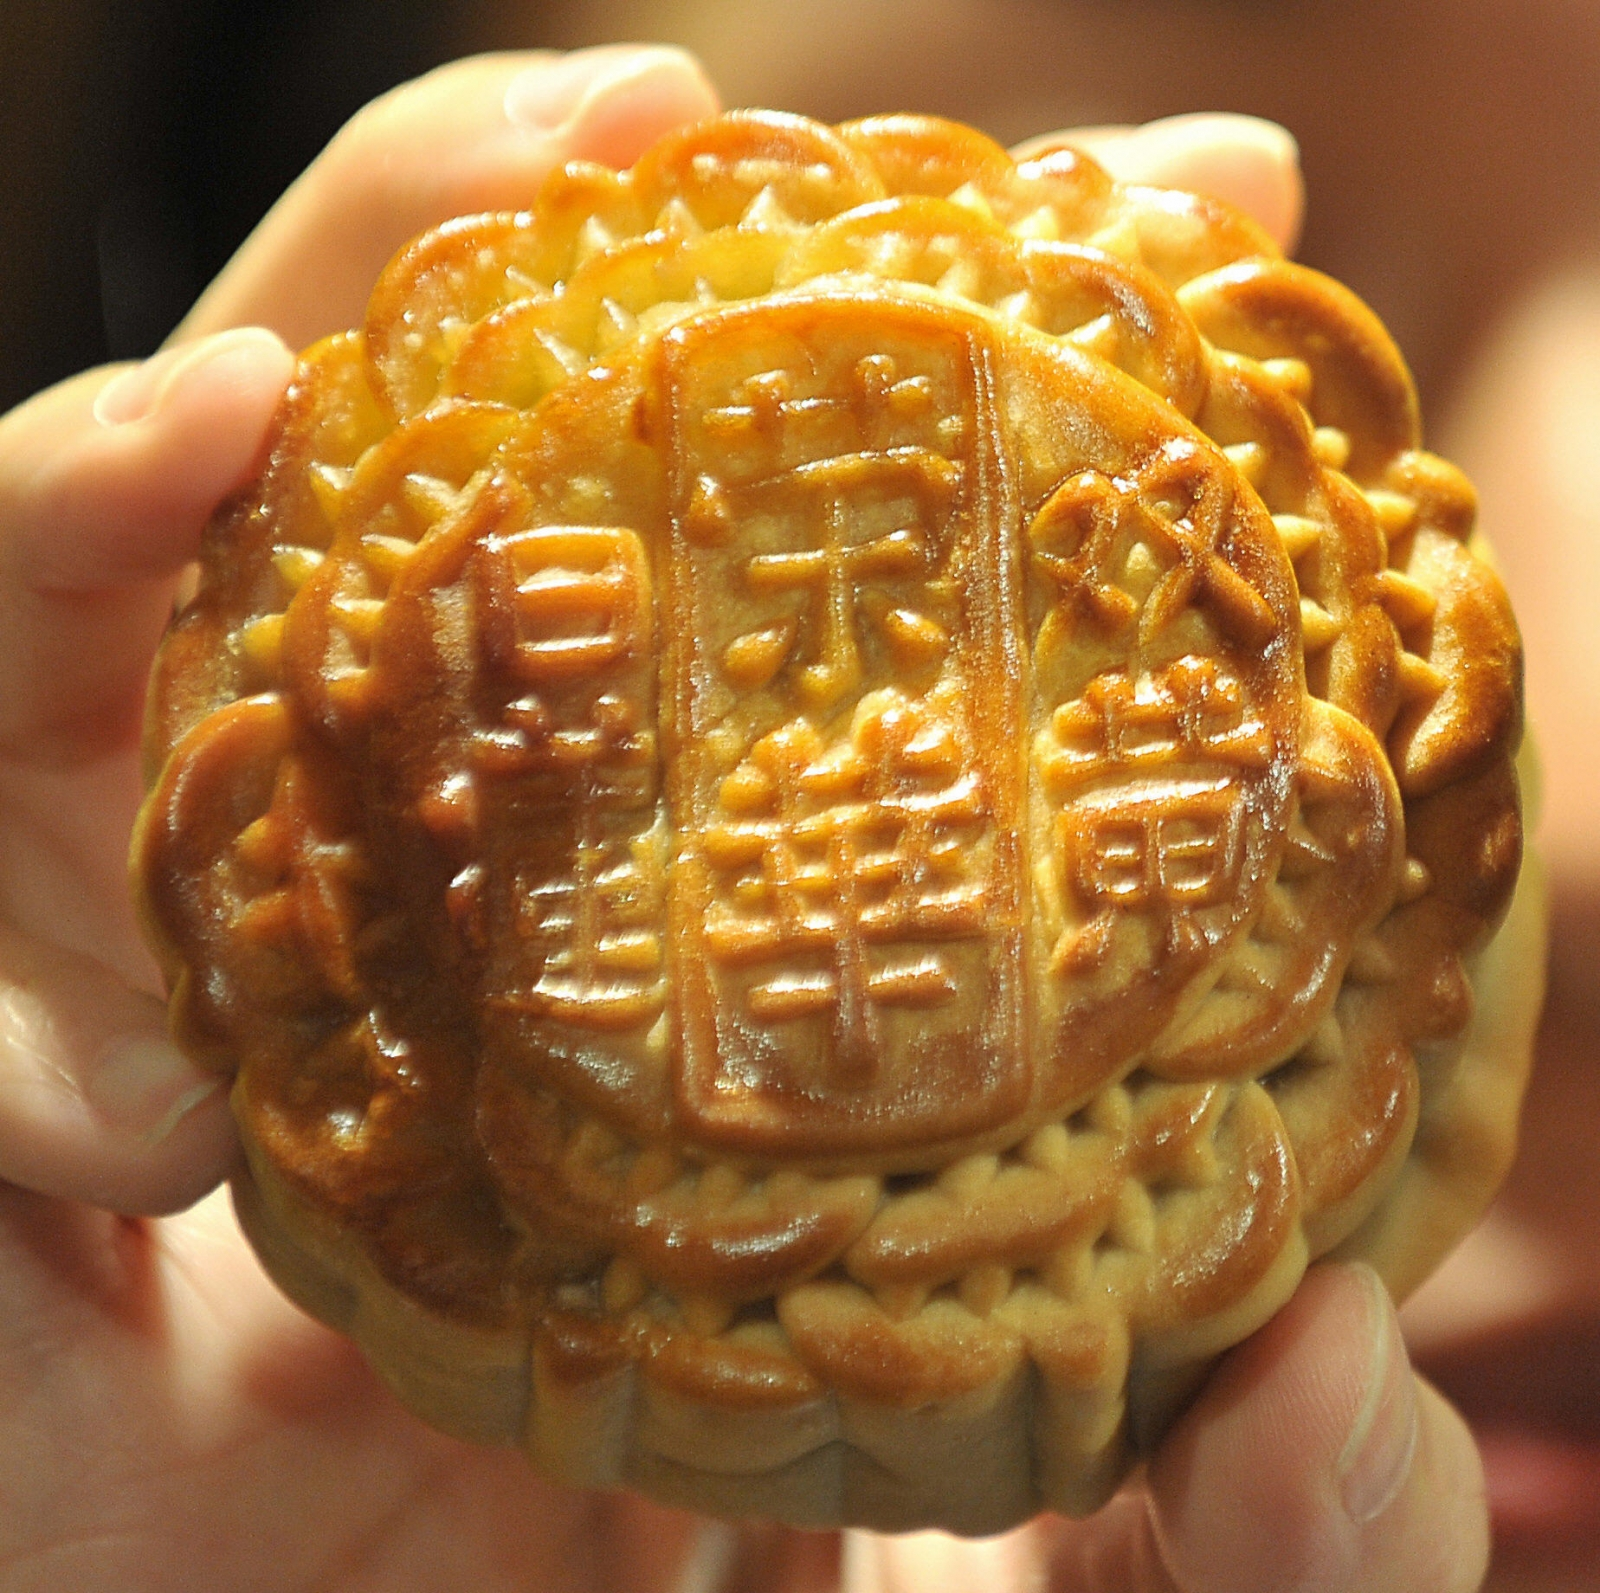 A traditional Chinese mooncake, made to celebrate the Mid-Autumn Festival